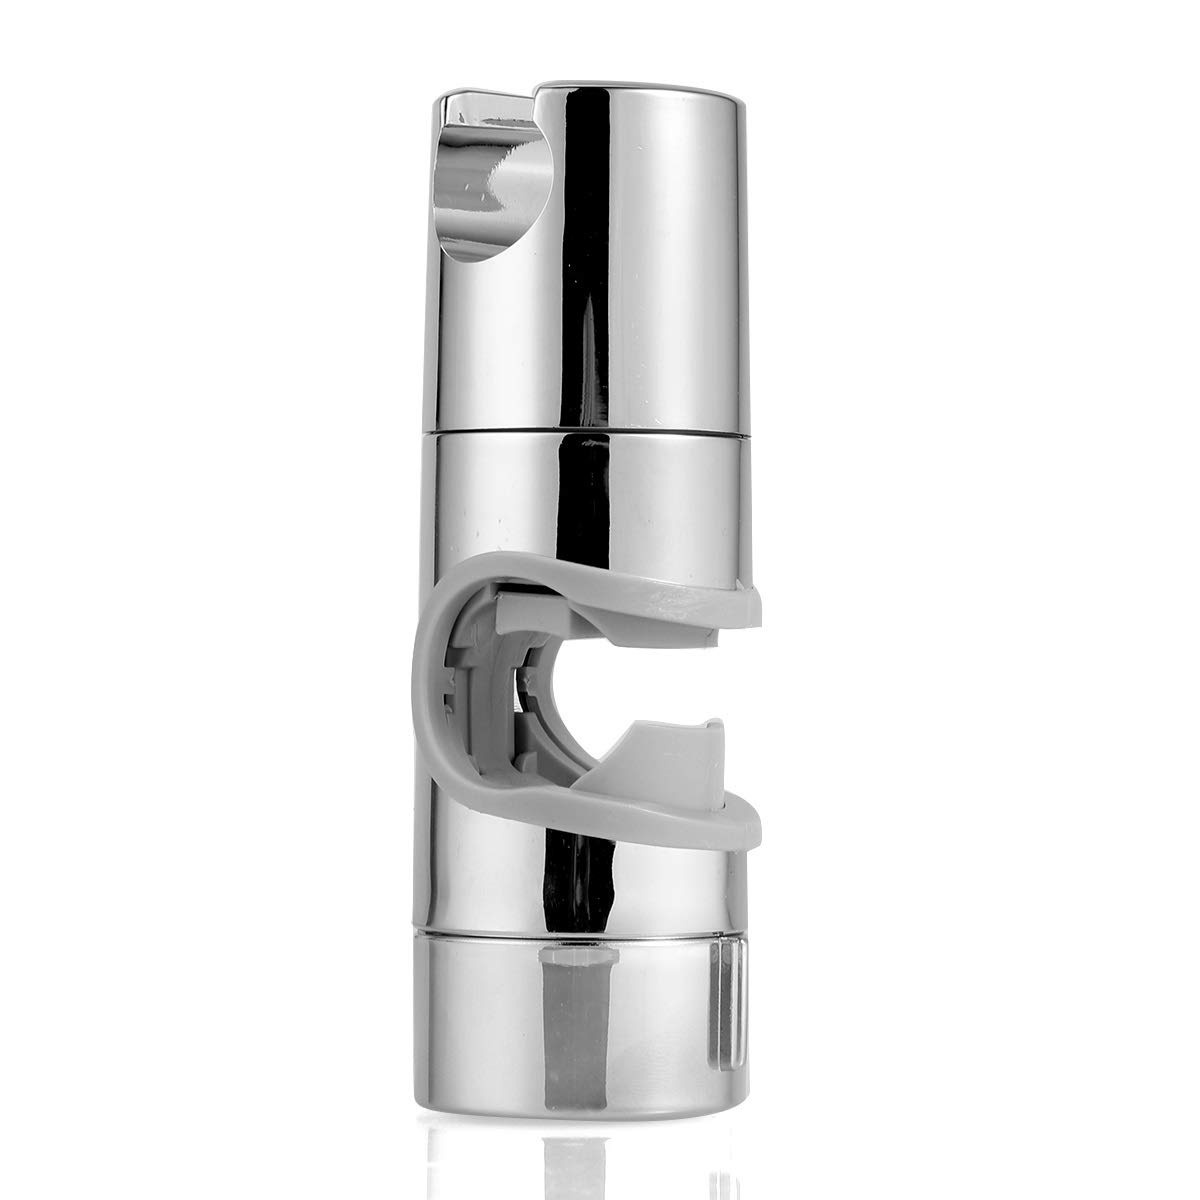 19~25mm Universal Adjustable ABS Shower Rail Head Slider Holder Replacement Bracket Slide Clamp (Color : Silver Grey) Tabpole